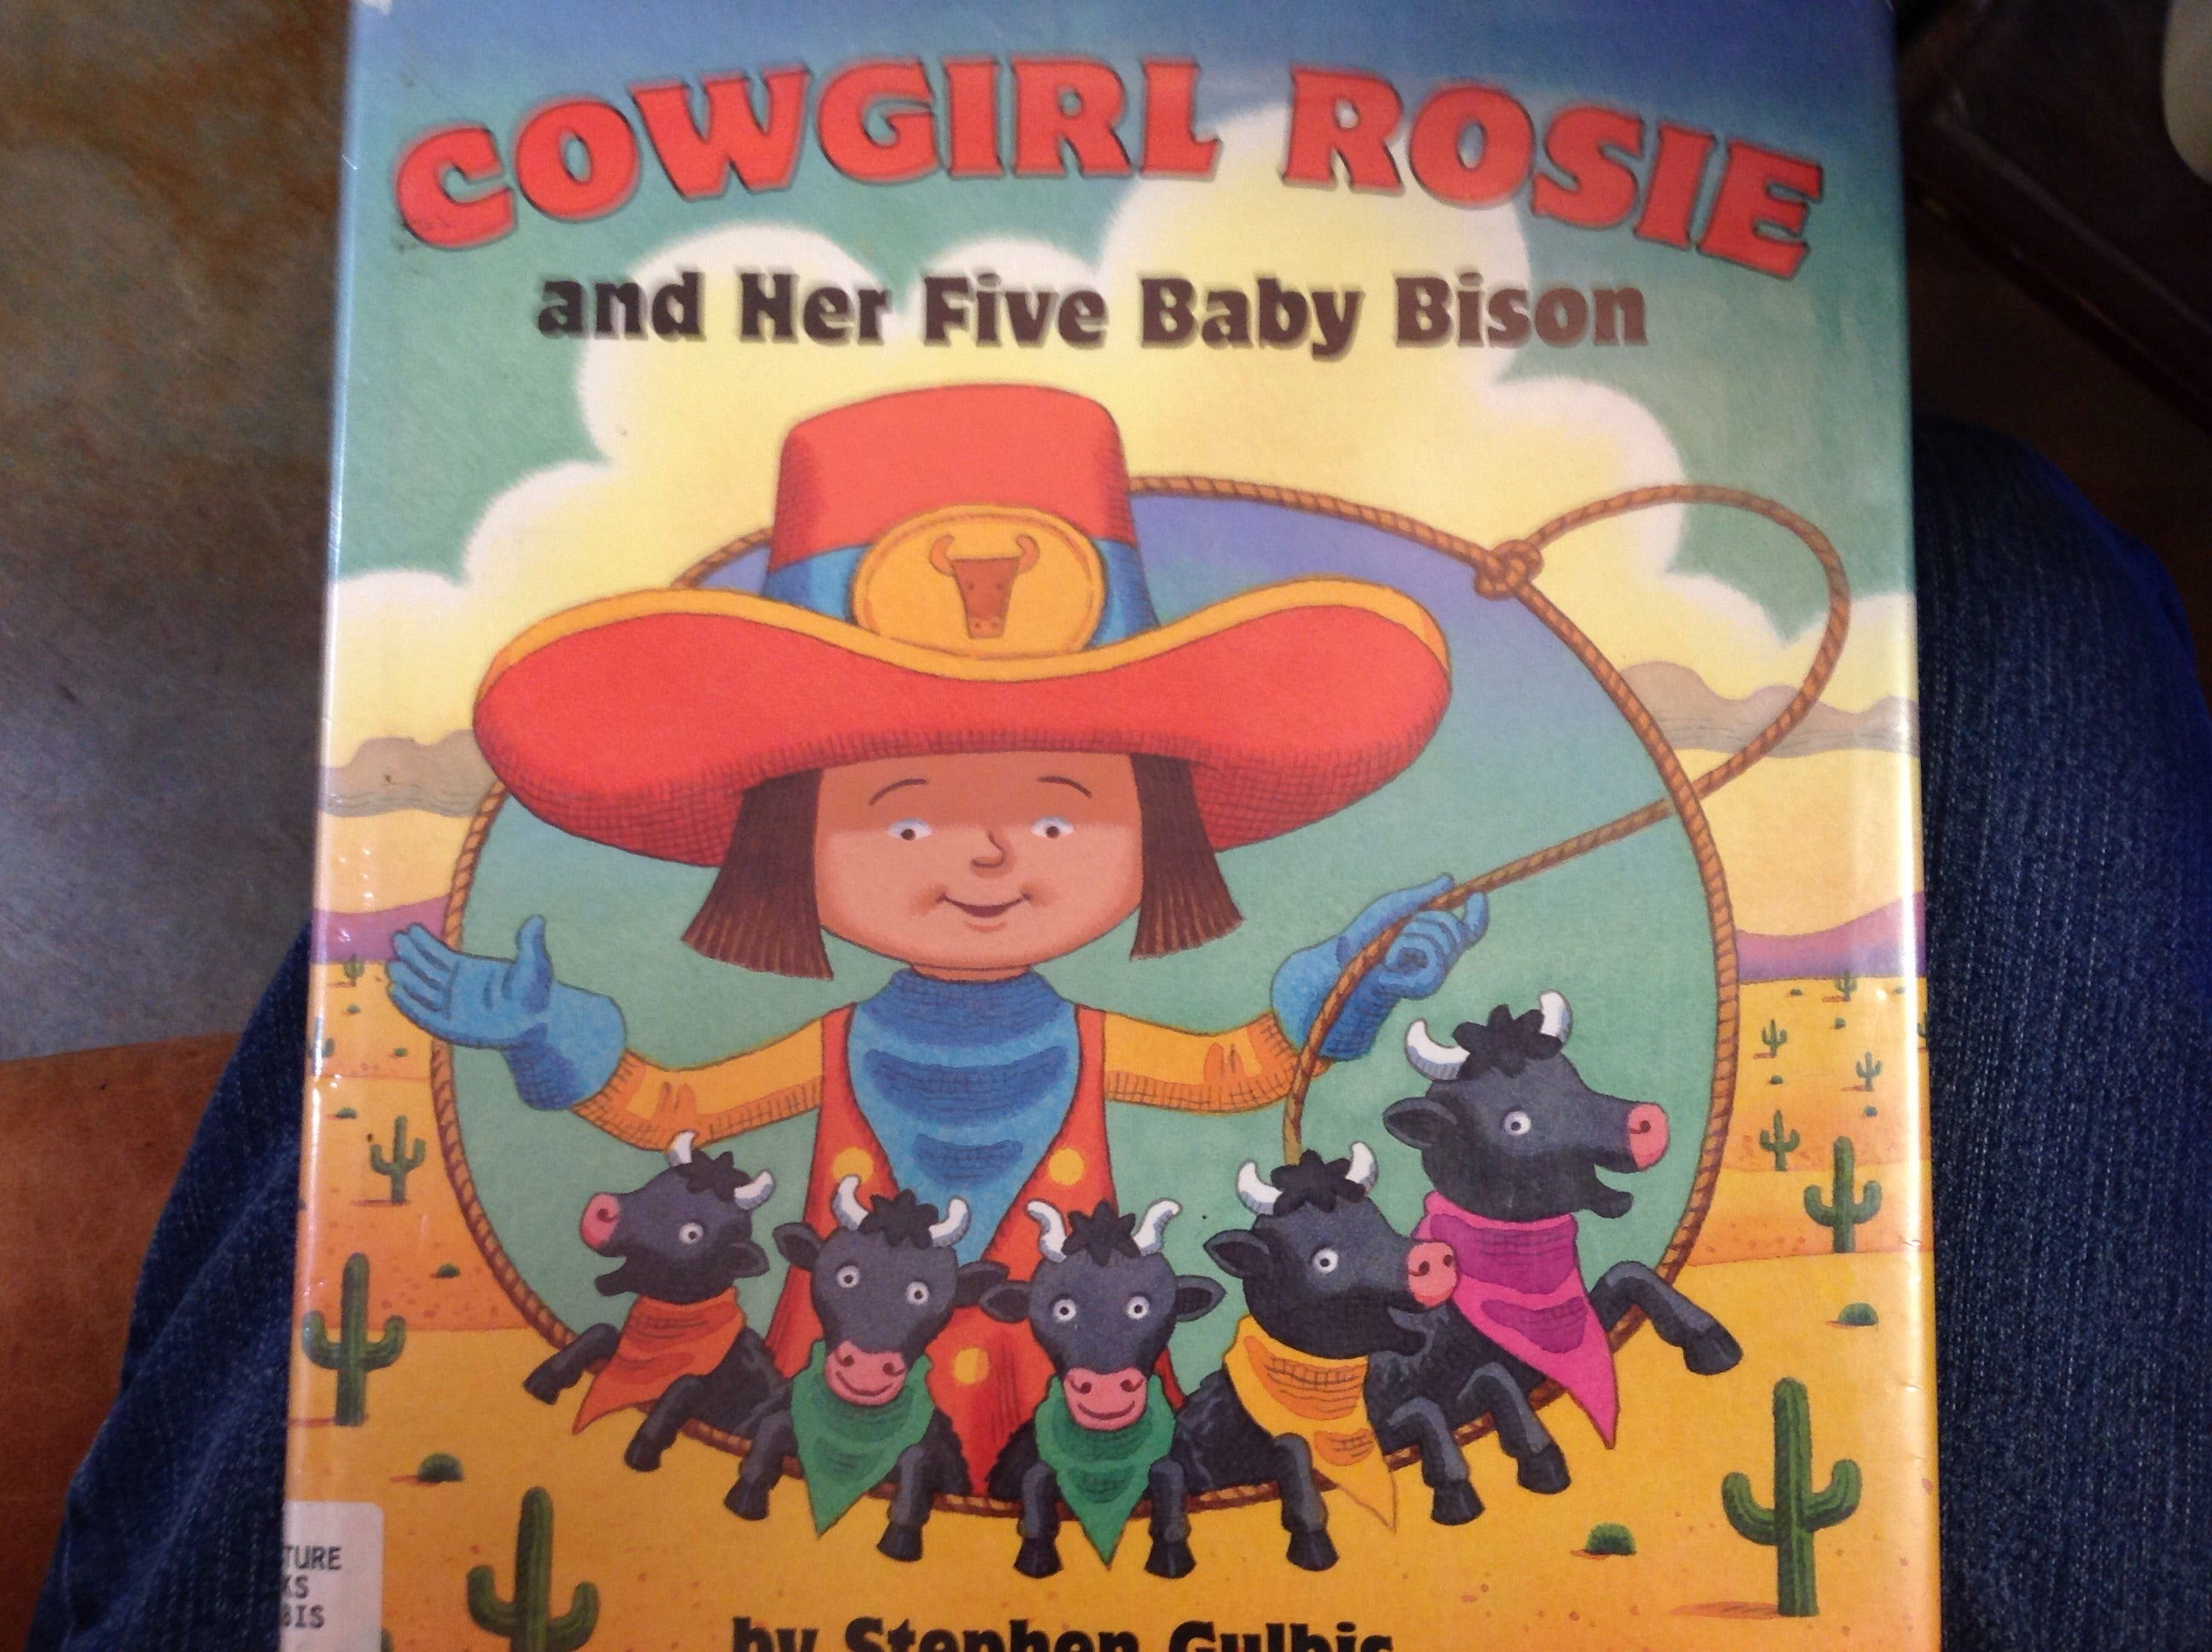 BOOKS - Cowgirl Rosie and Her Five Baby Bison